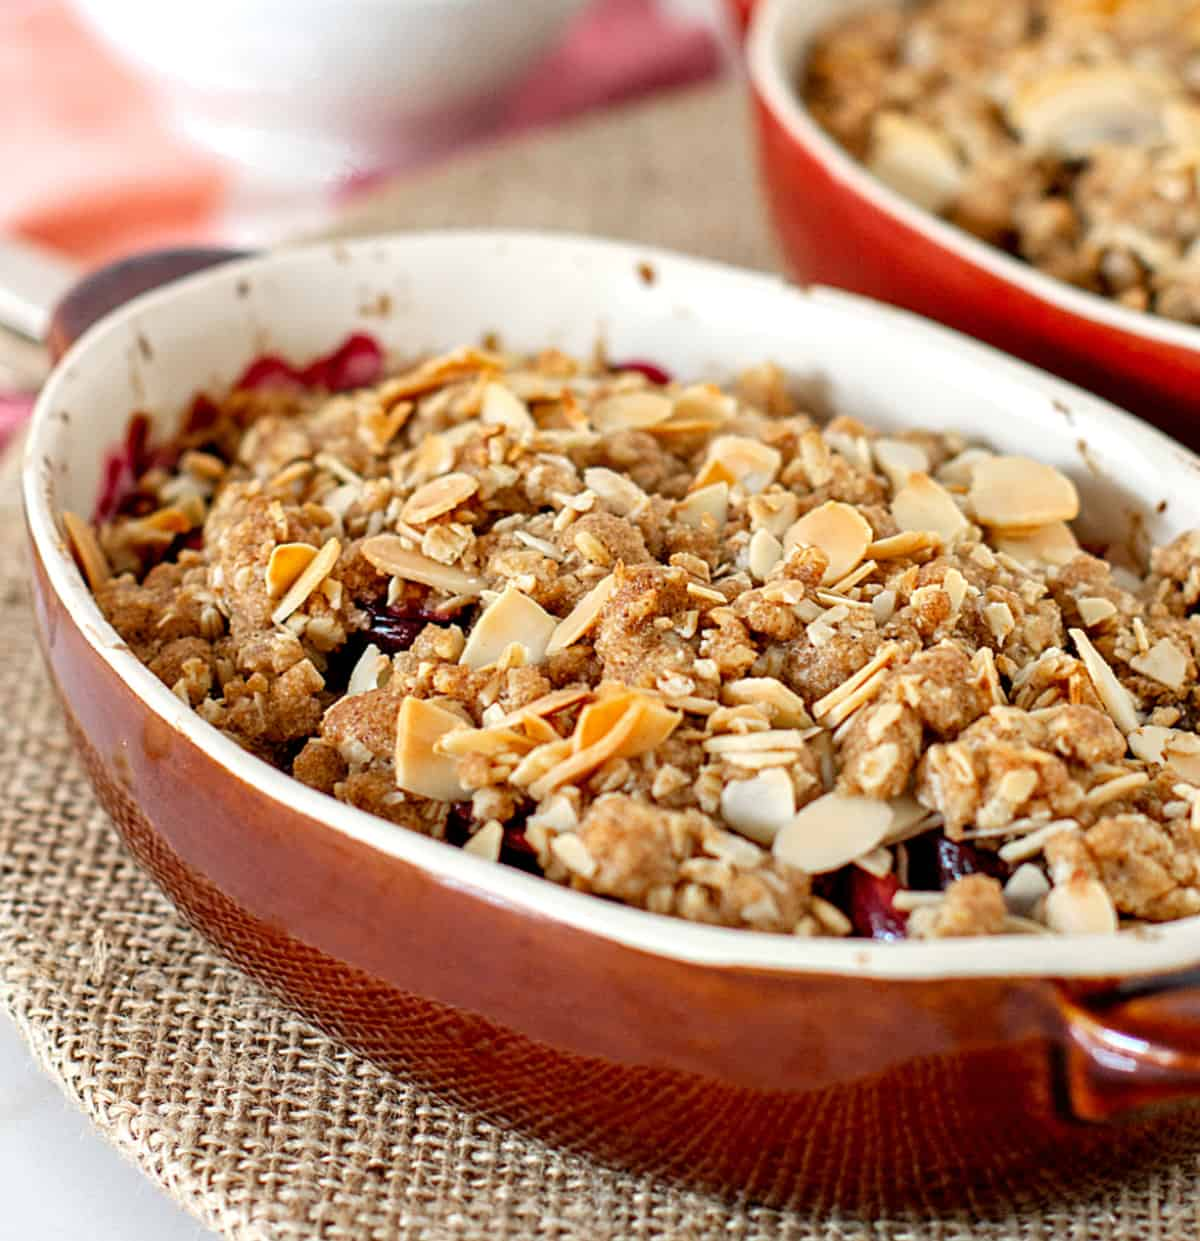 Brown oval dish with baked crumble, burlap surface